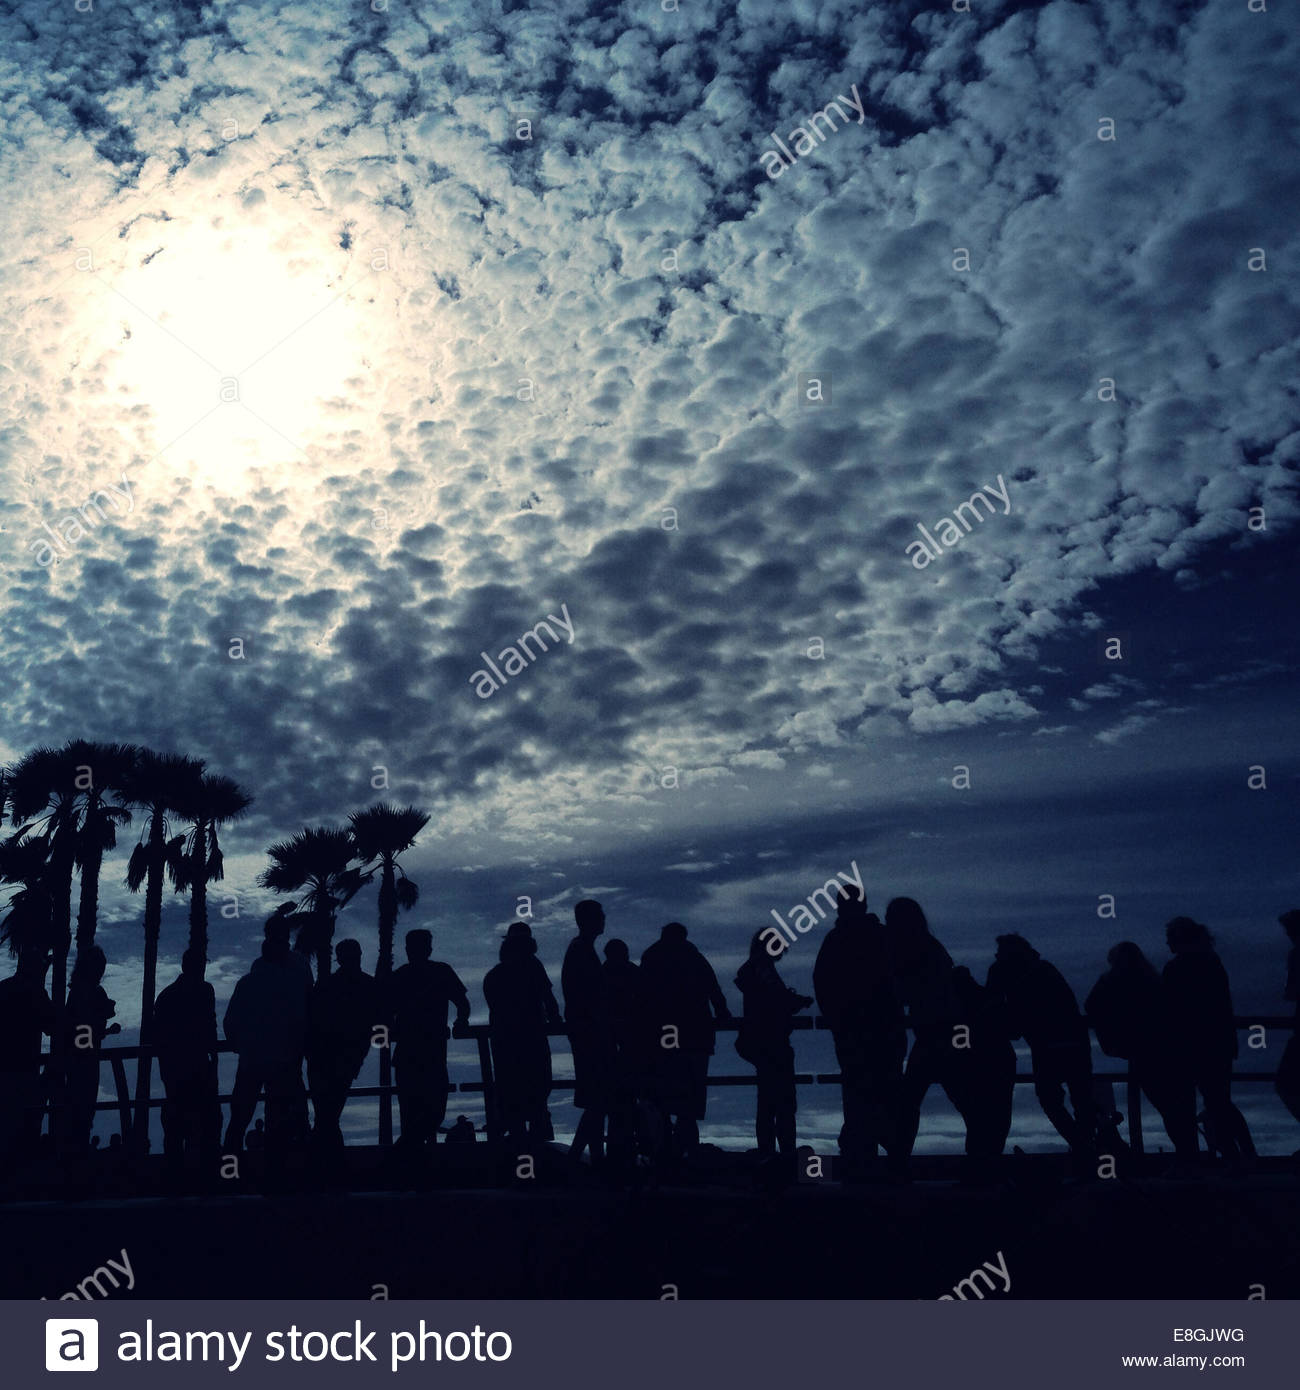 Crowd standing of people by railing - Stock Image